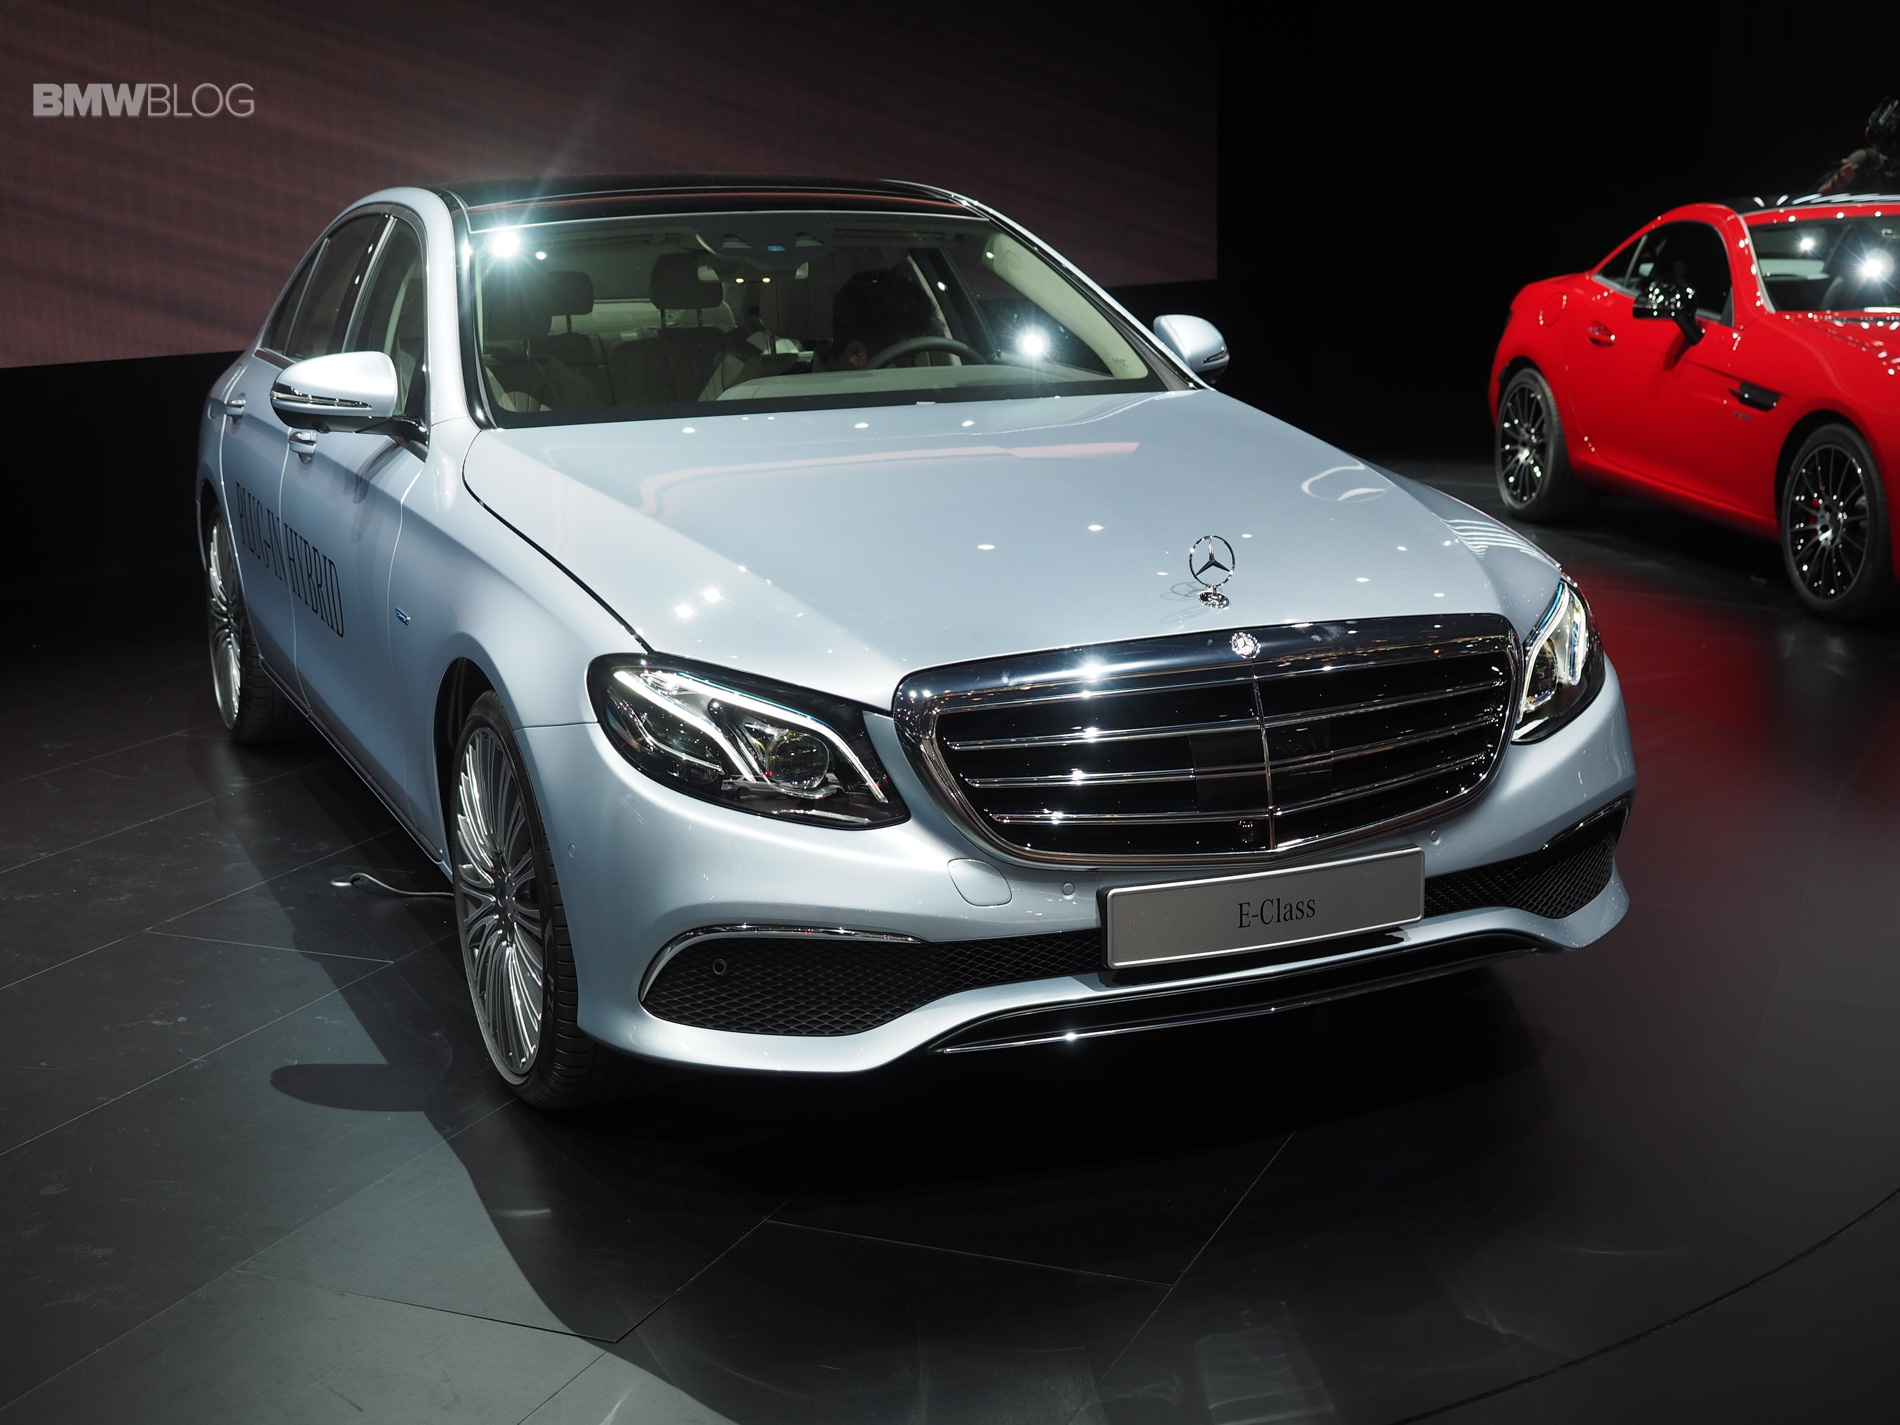 New Mercedes-Benz E-Class launches in Detroit as BMW's 5 Series ...